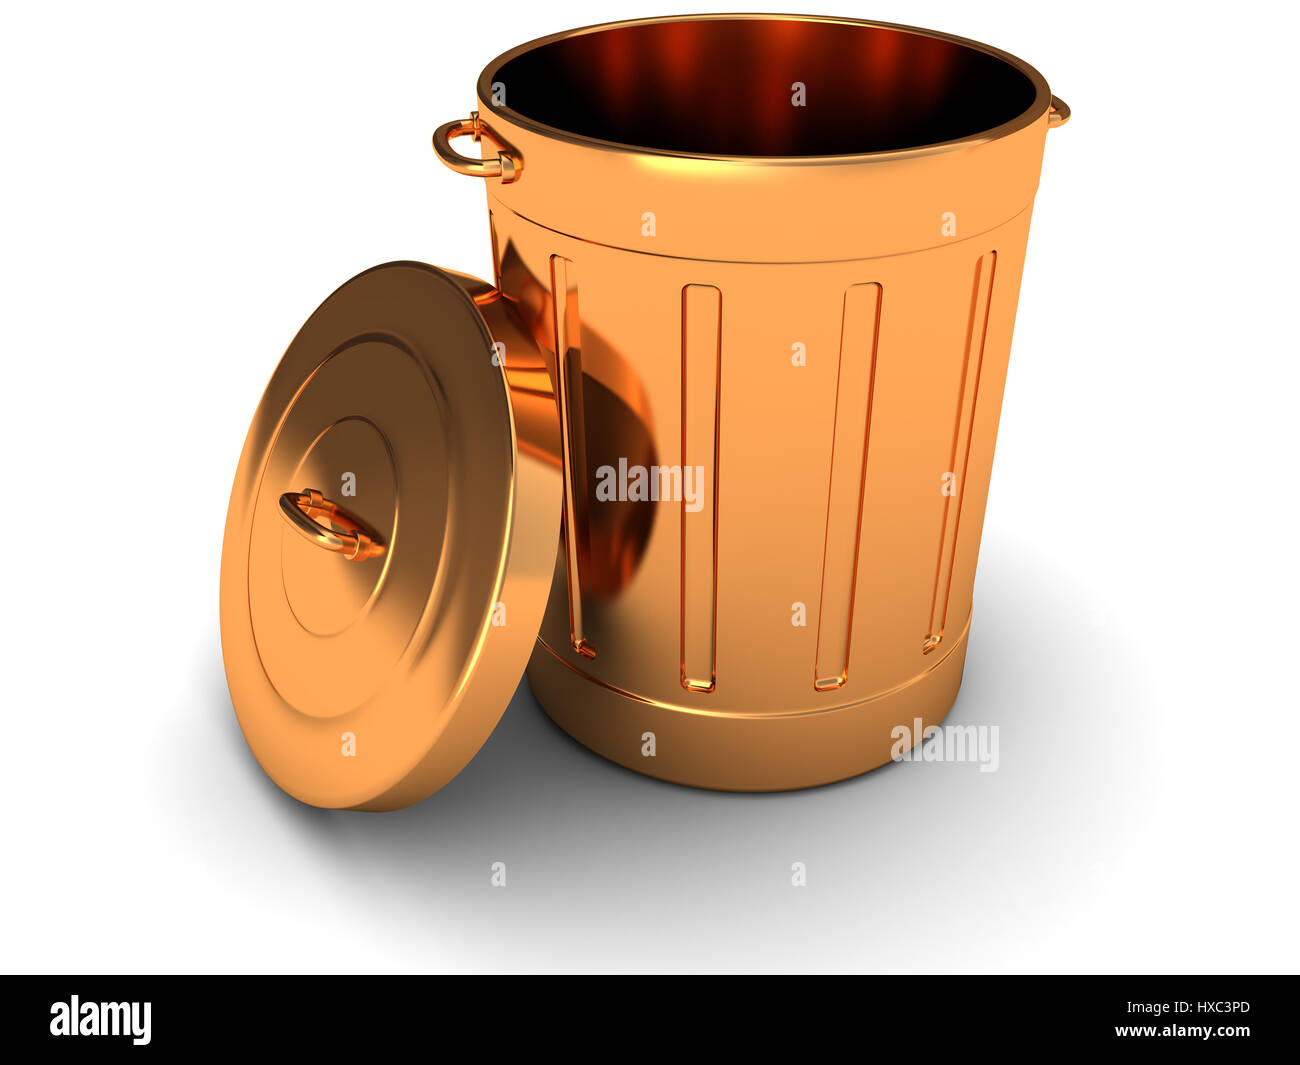 Copper Trash Can With Lid 3d Illustration Of Copper Trash Can Over White Background Stock